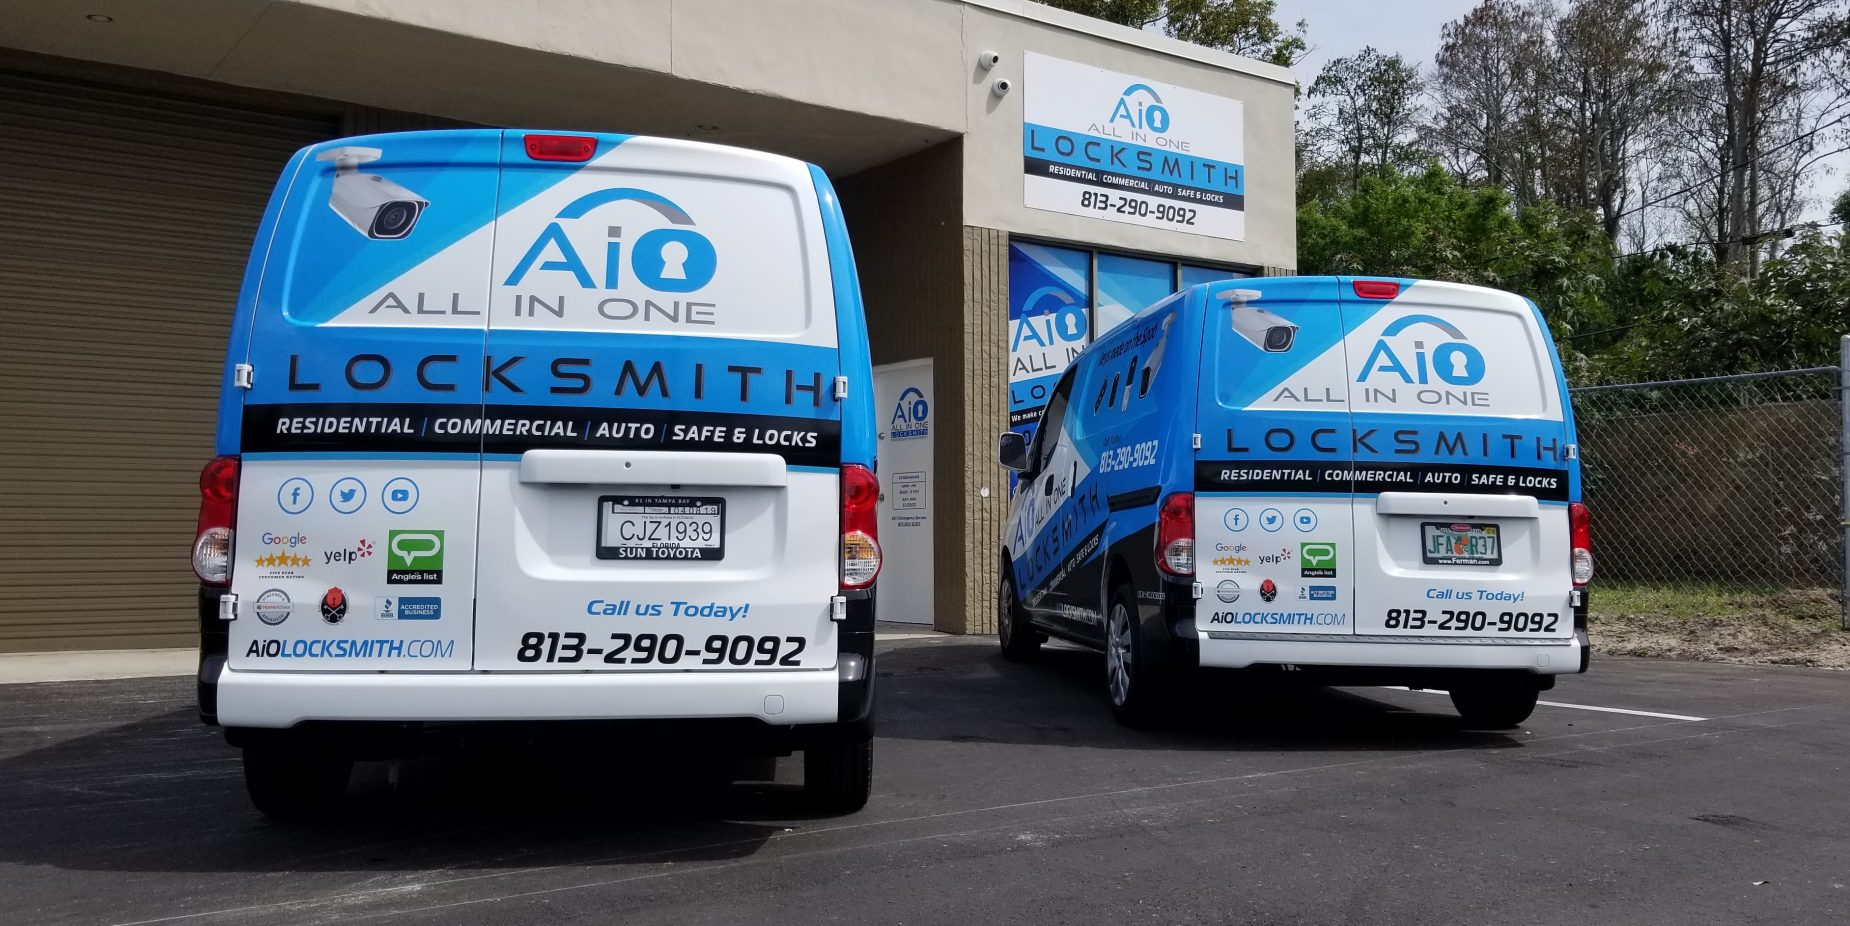 All In One Locksmith Tampa